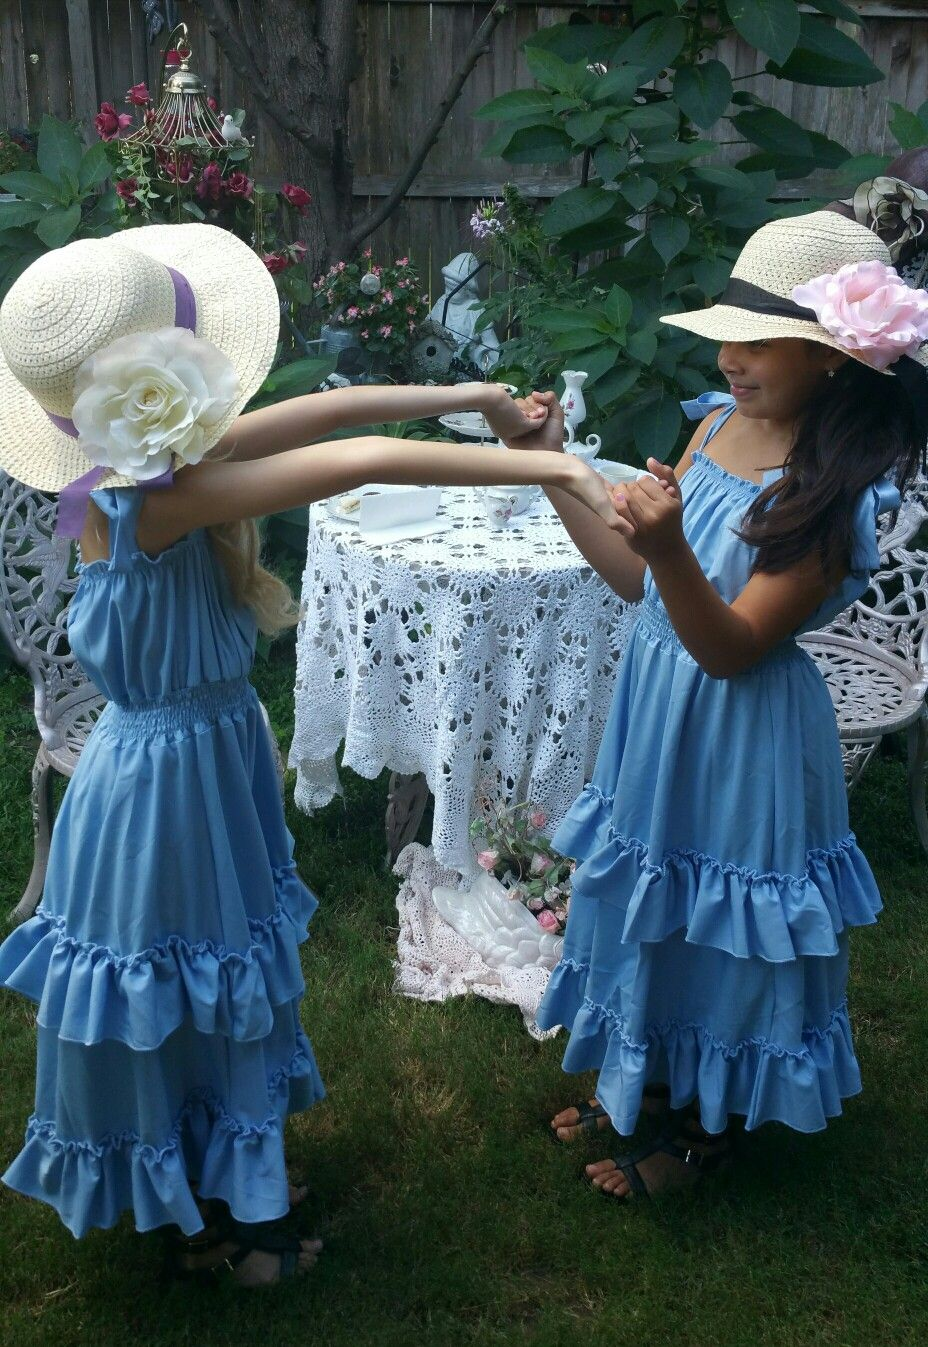 Pin by Janet Rhodes on Bellaus Tea Party with Best Friend Mia Sept